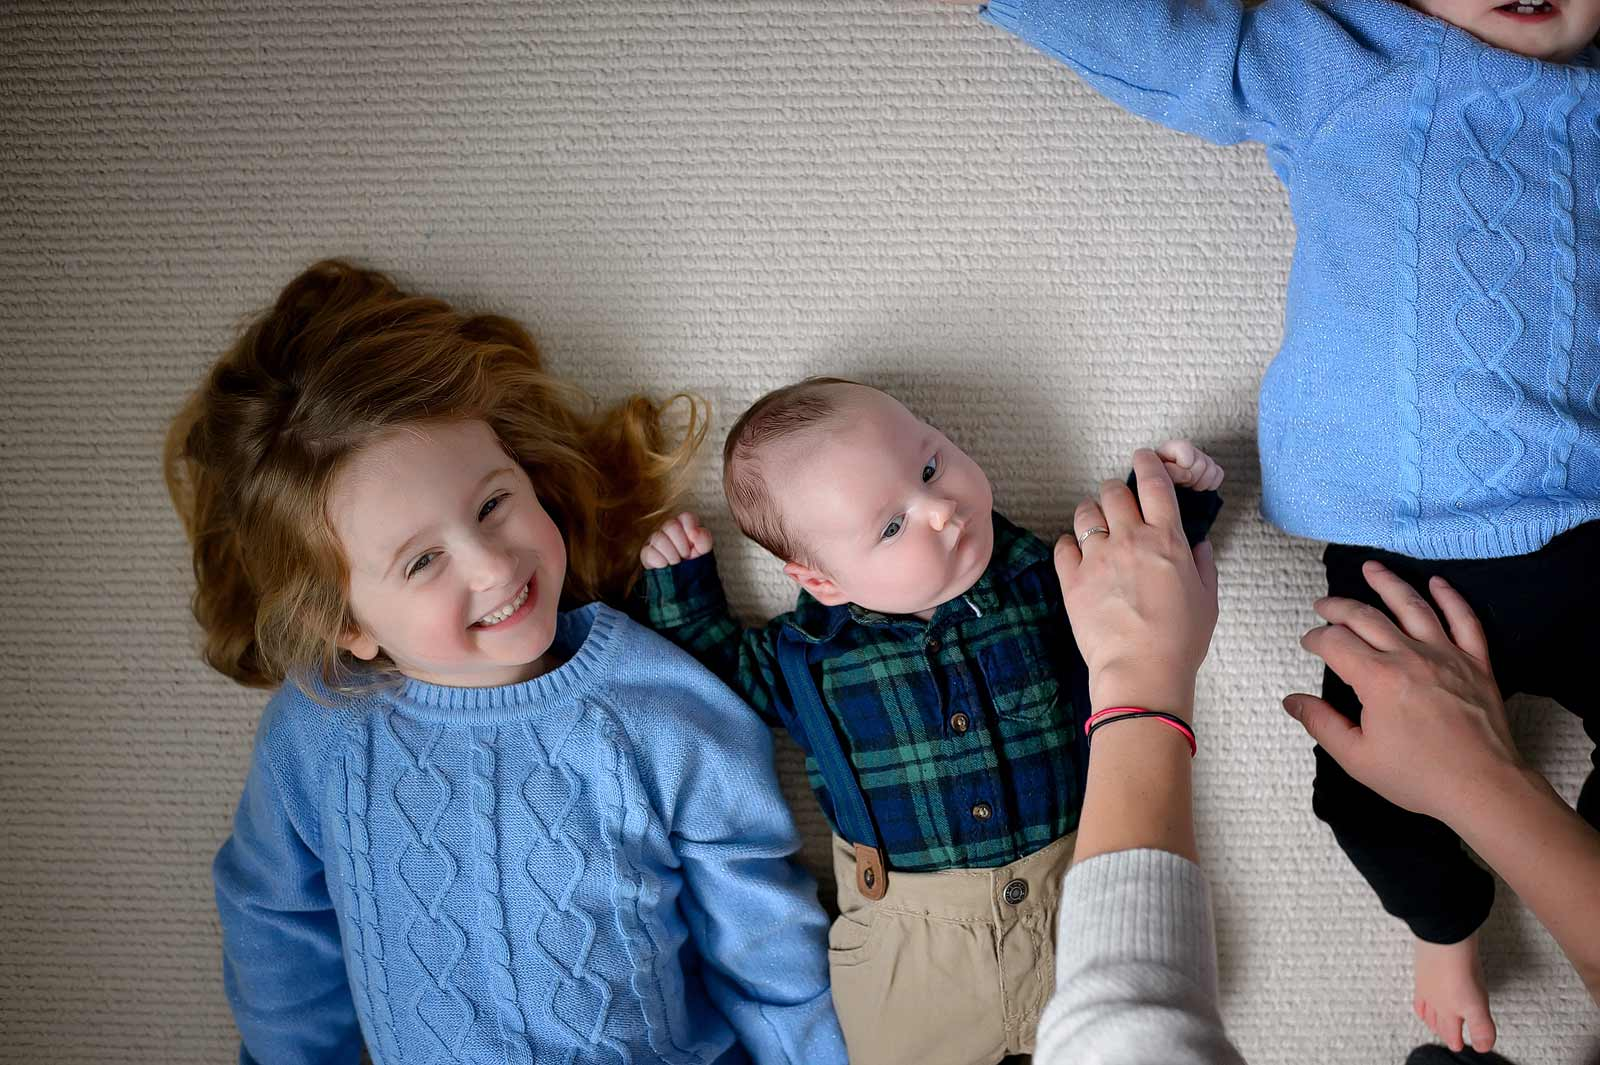 Baby Connor with his sisters when one sister is escaping the frame of the photo in Ottawa, Ontario